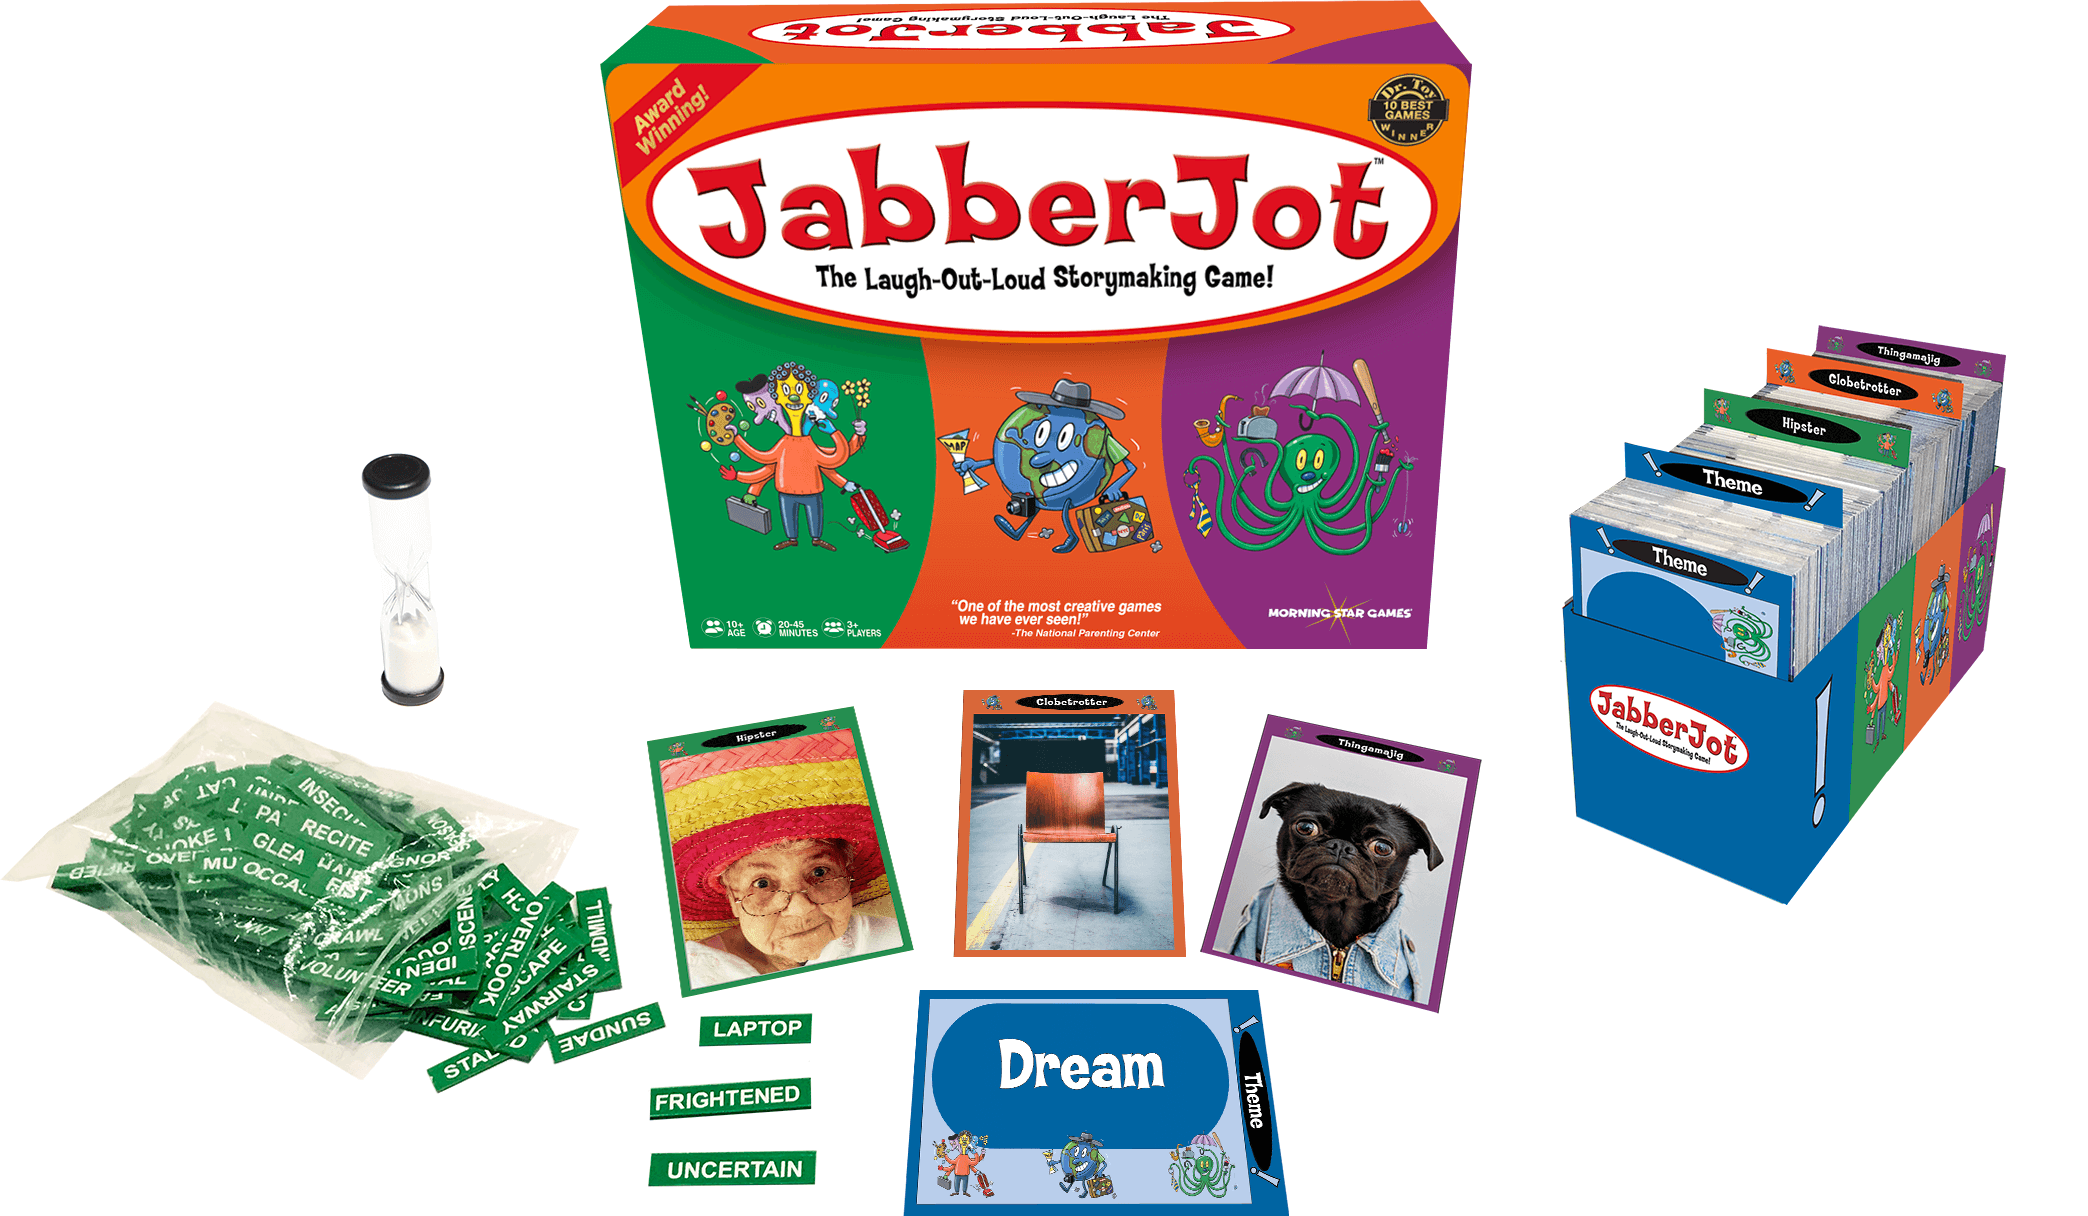 JabberJot: The Award-Winning Game Launches Kickstarter Campaign